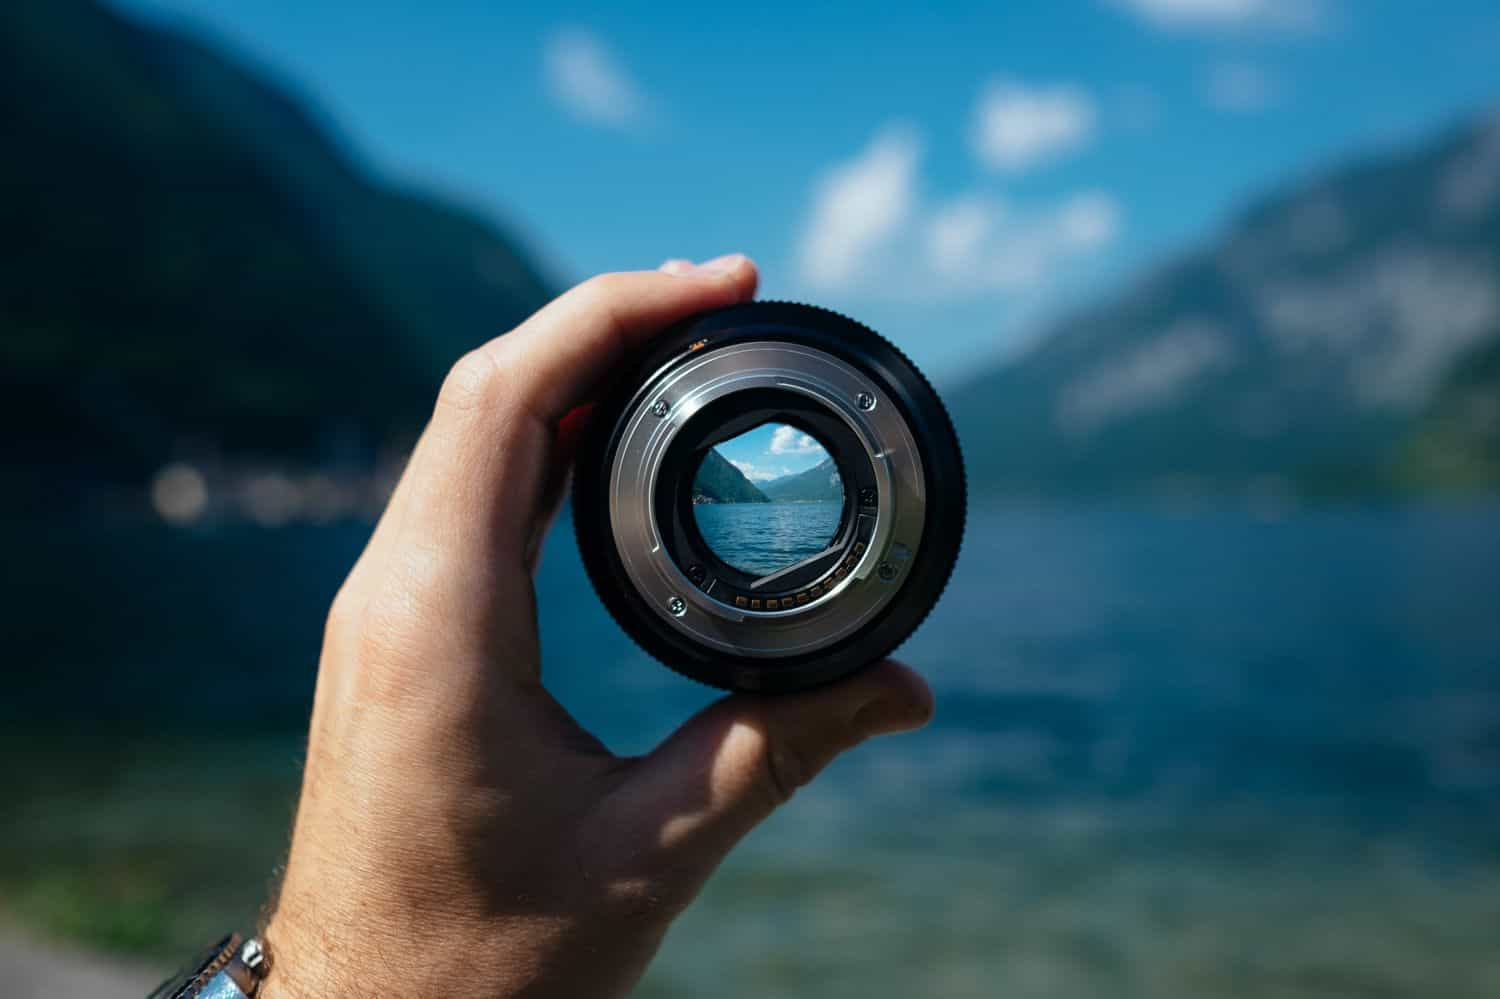 A person holds a lens separate from the camera. You can see beautiful blue sky, mountains, and a lake through the lens.